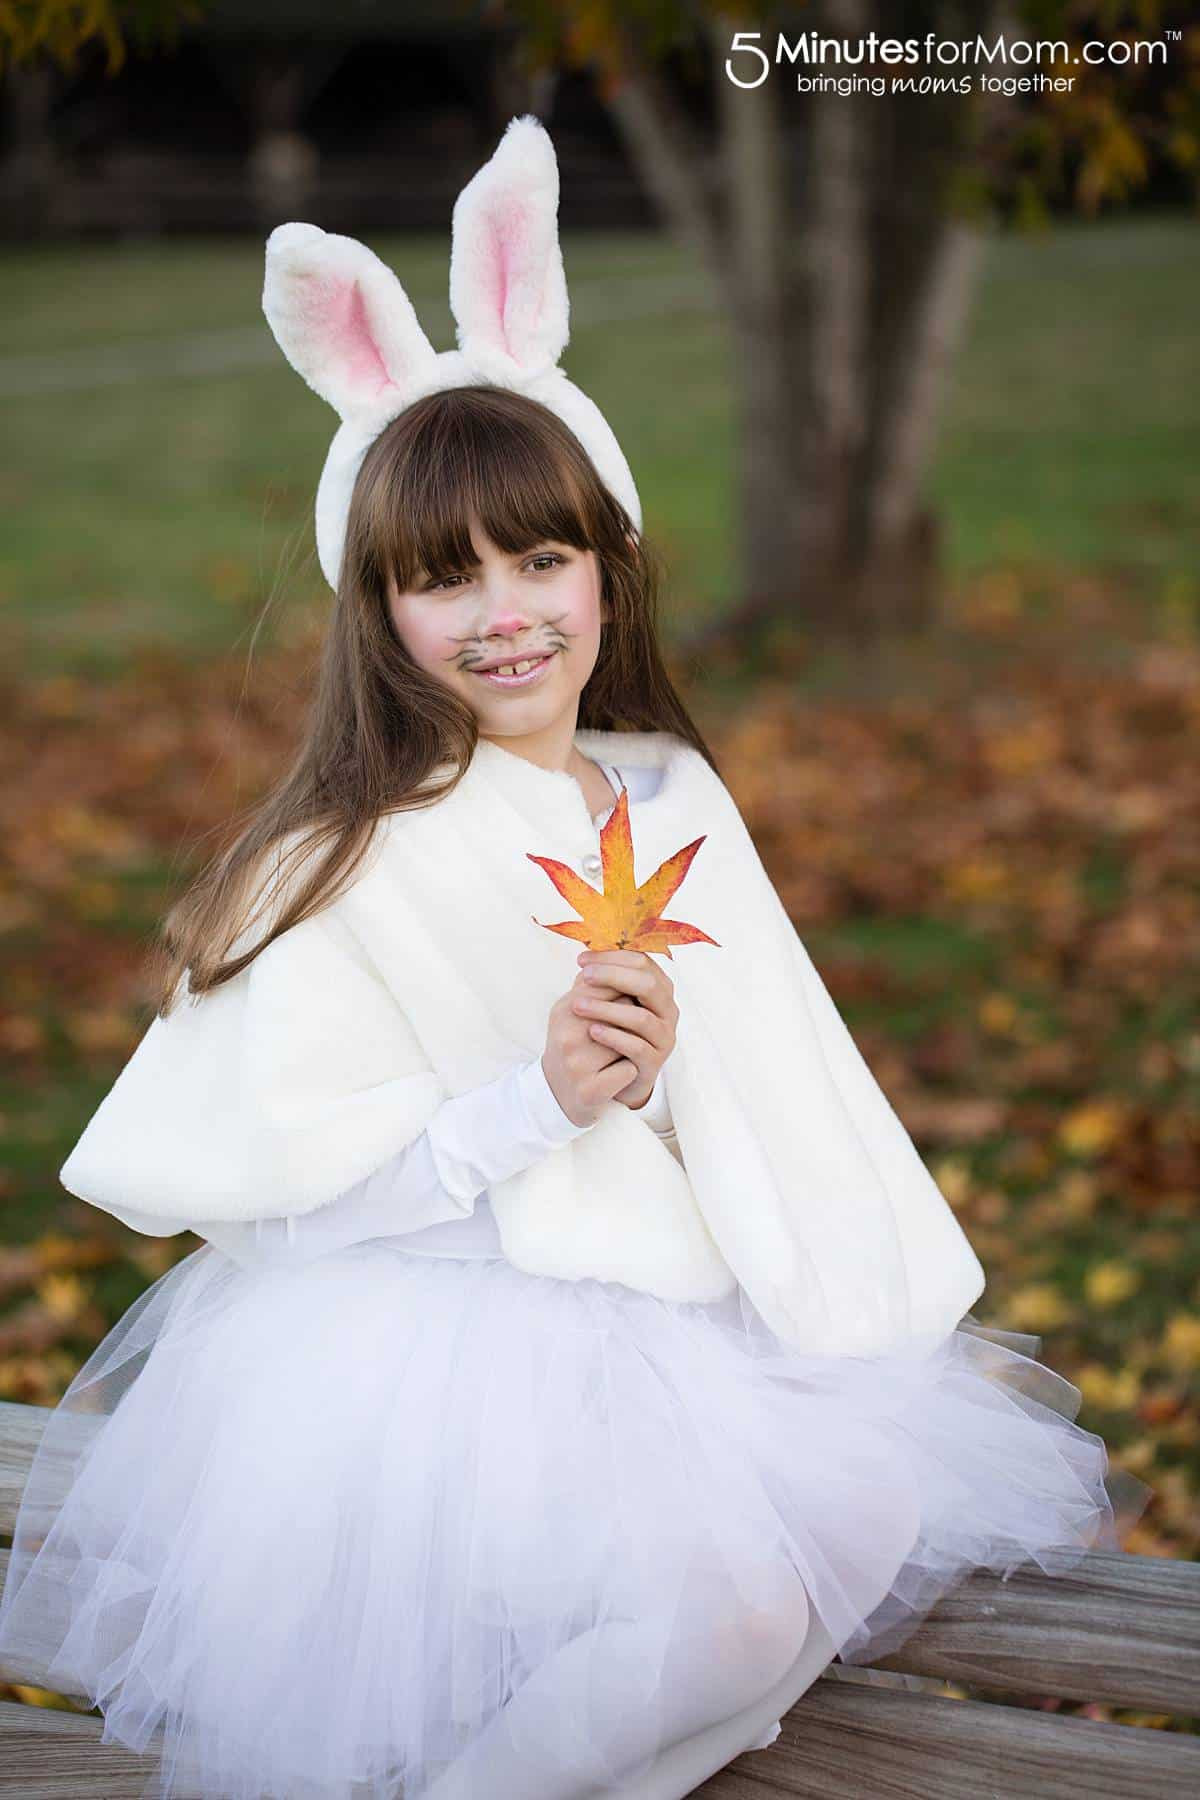 Best ideas about DIY Rabbit Costume . Save or Pin DIY Halloween Costumes For Girls 5 Minutes for Mom Now.